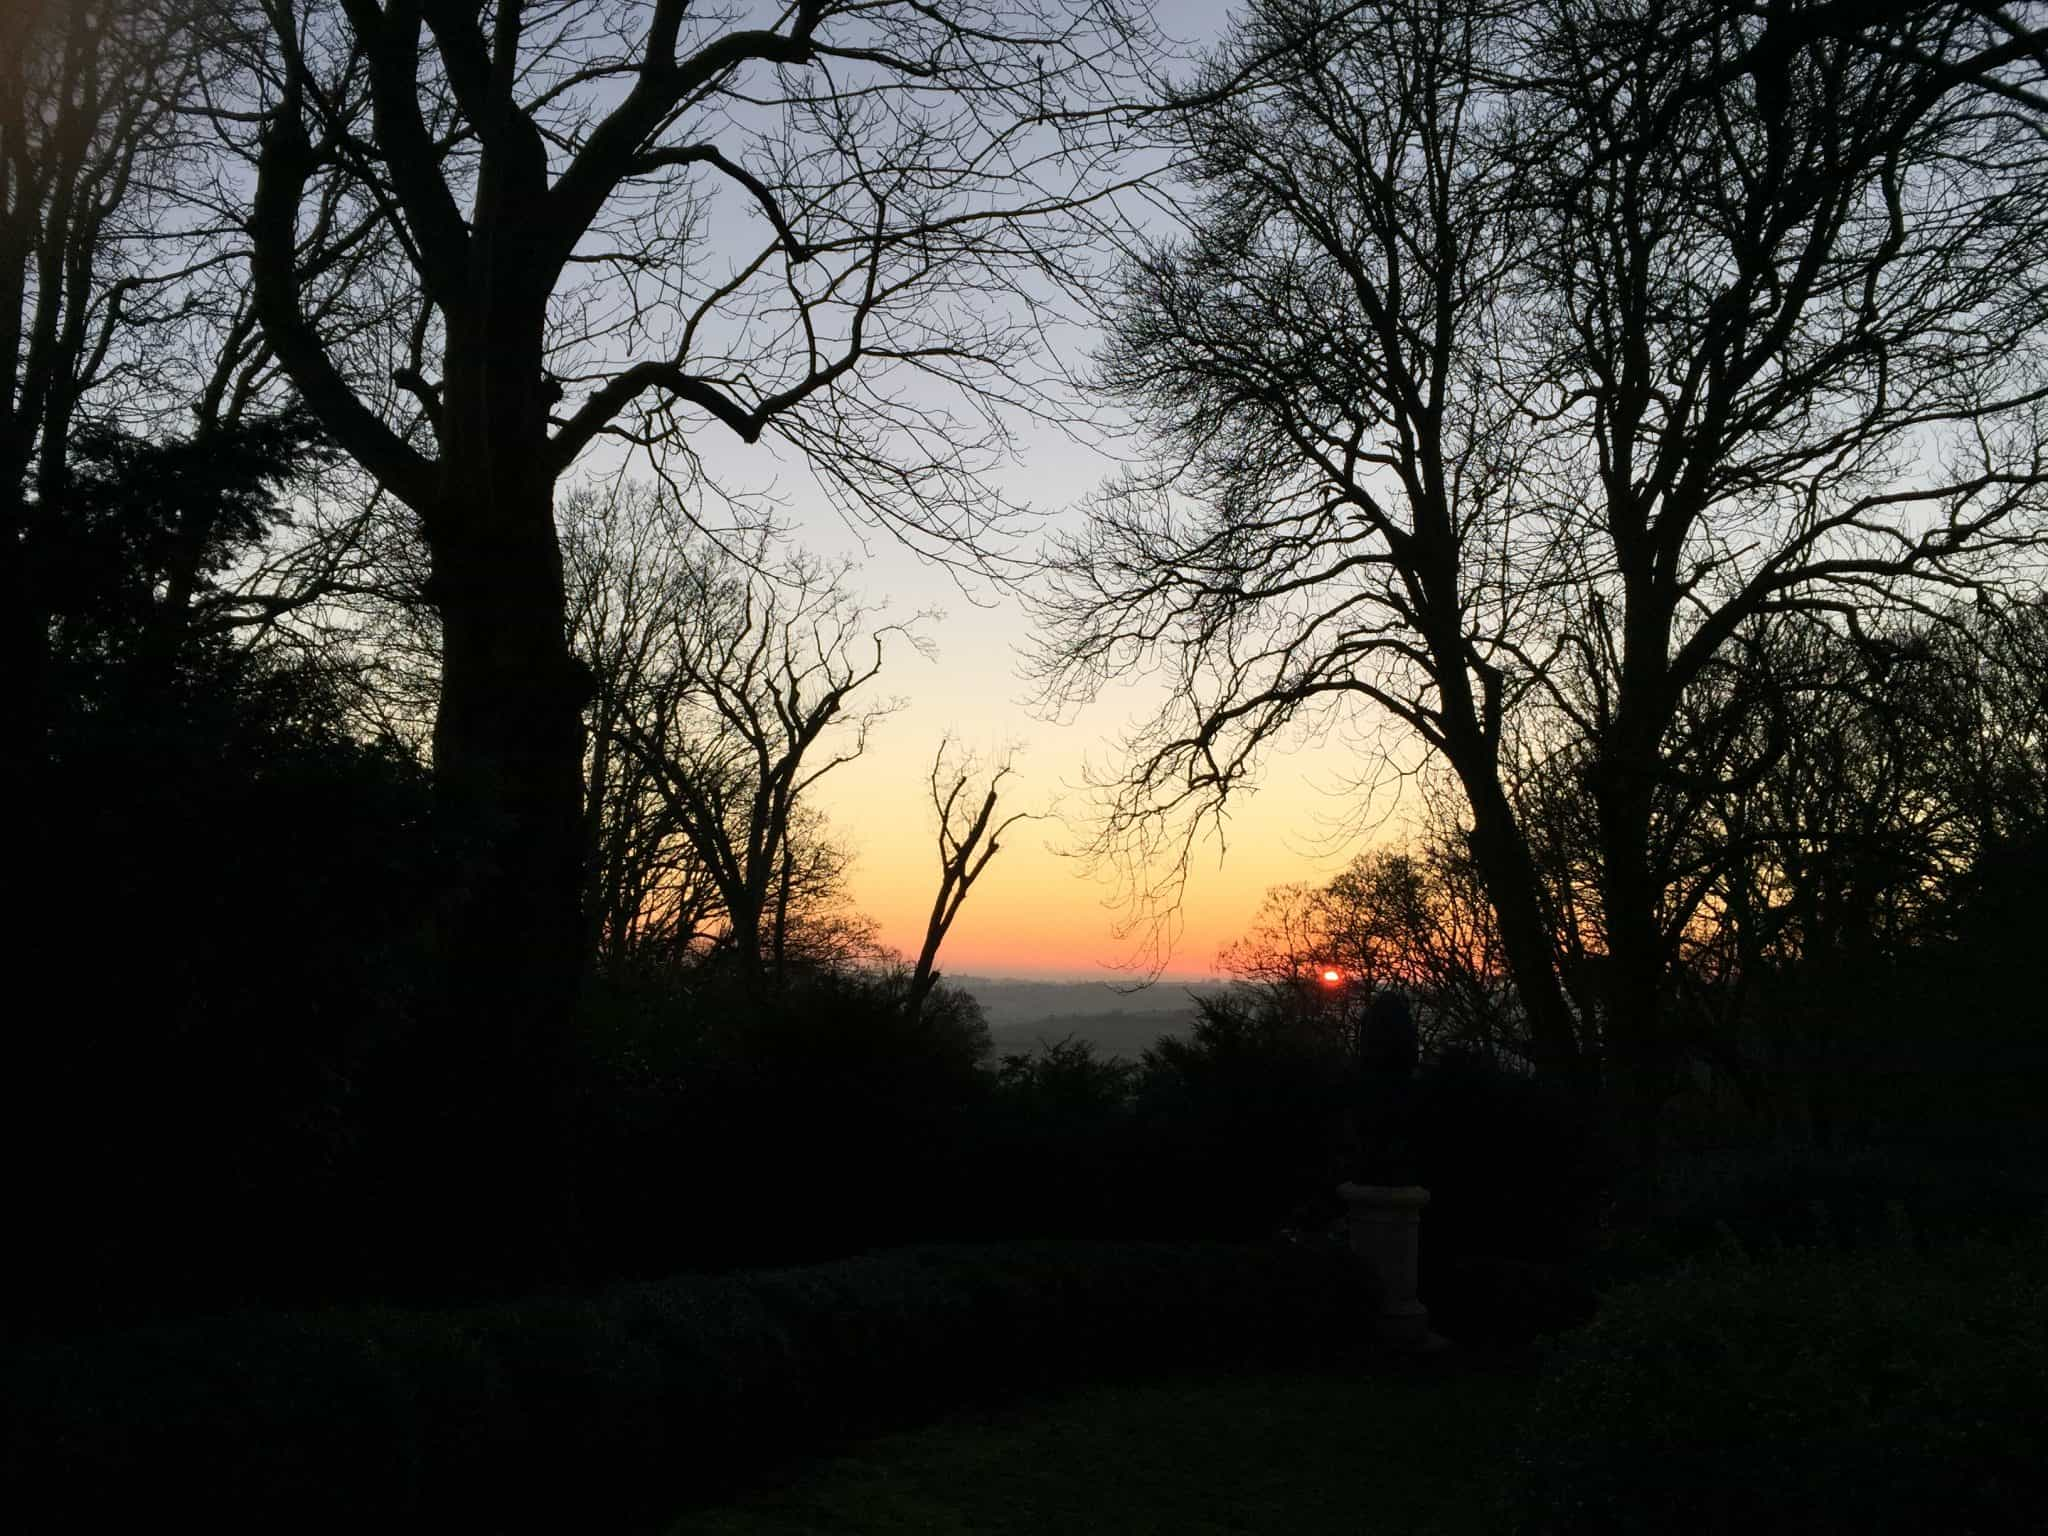 The view from Waddesdon Manor at sunset